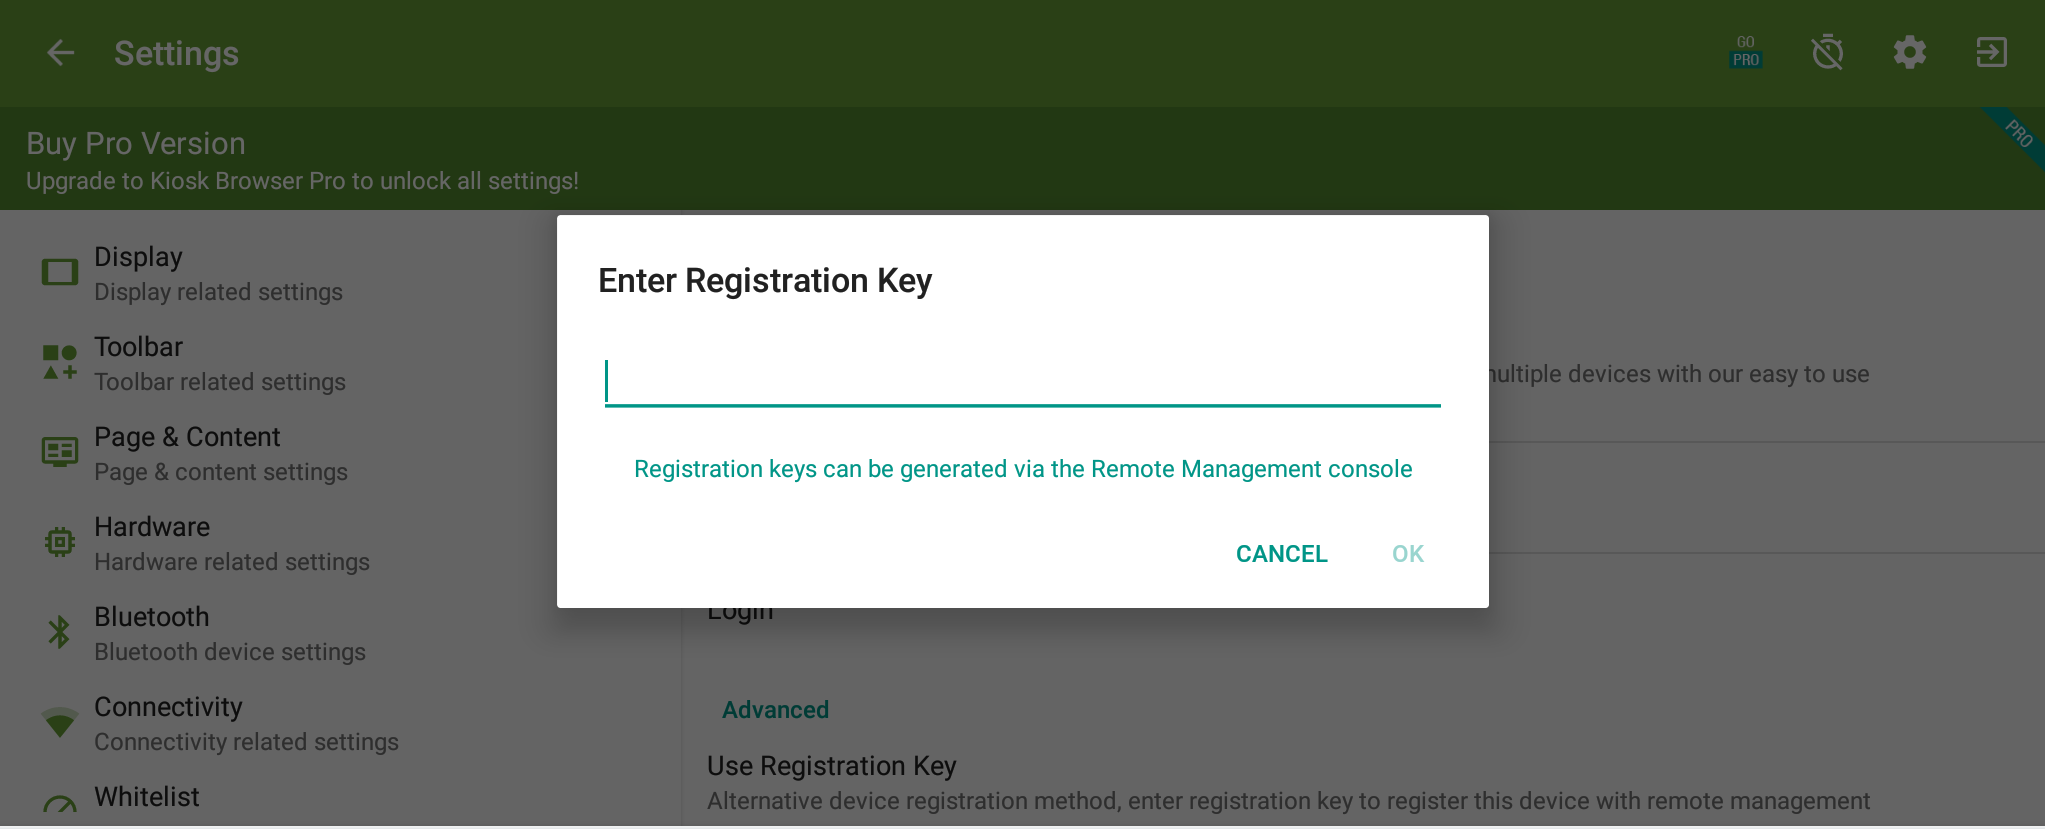 Enter Registration Key Dialog in Kiosk Browser